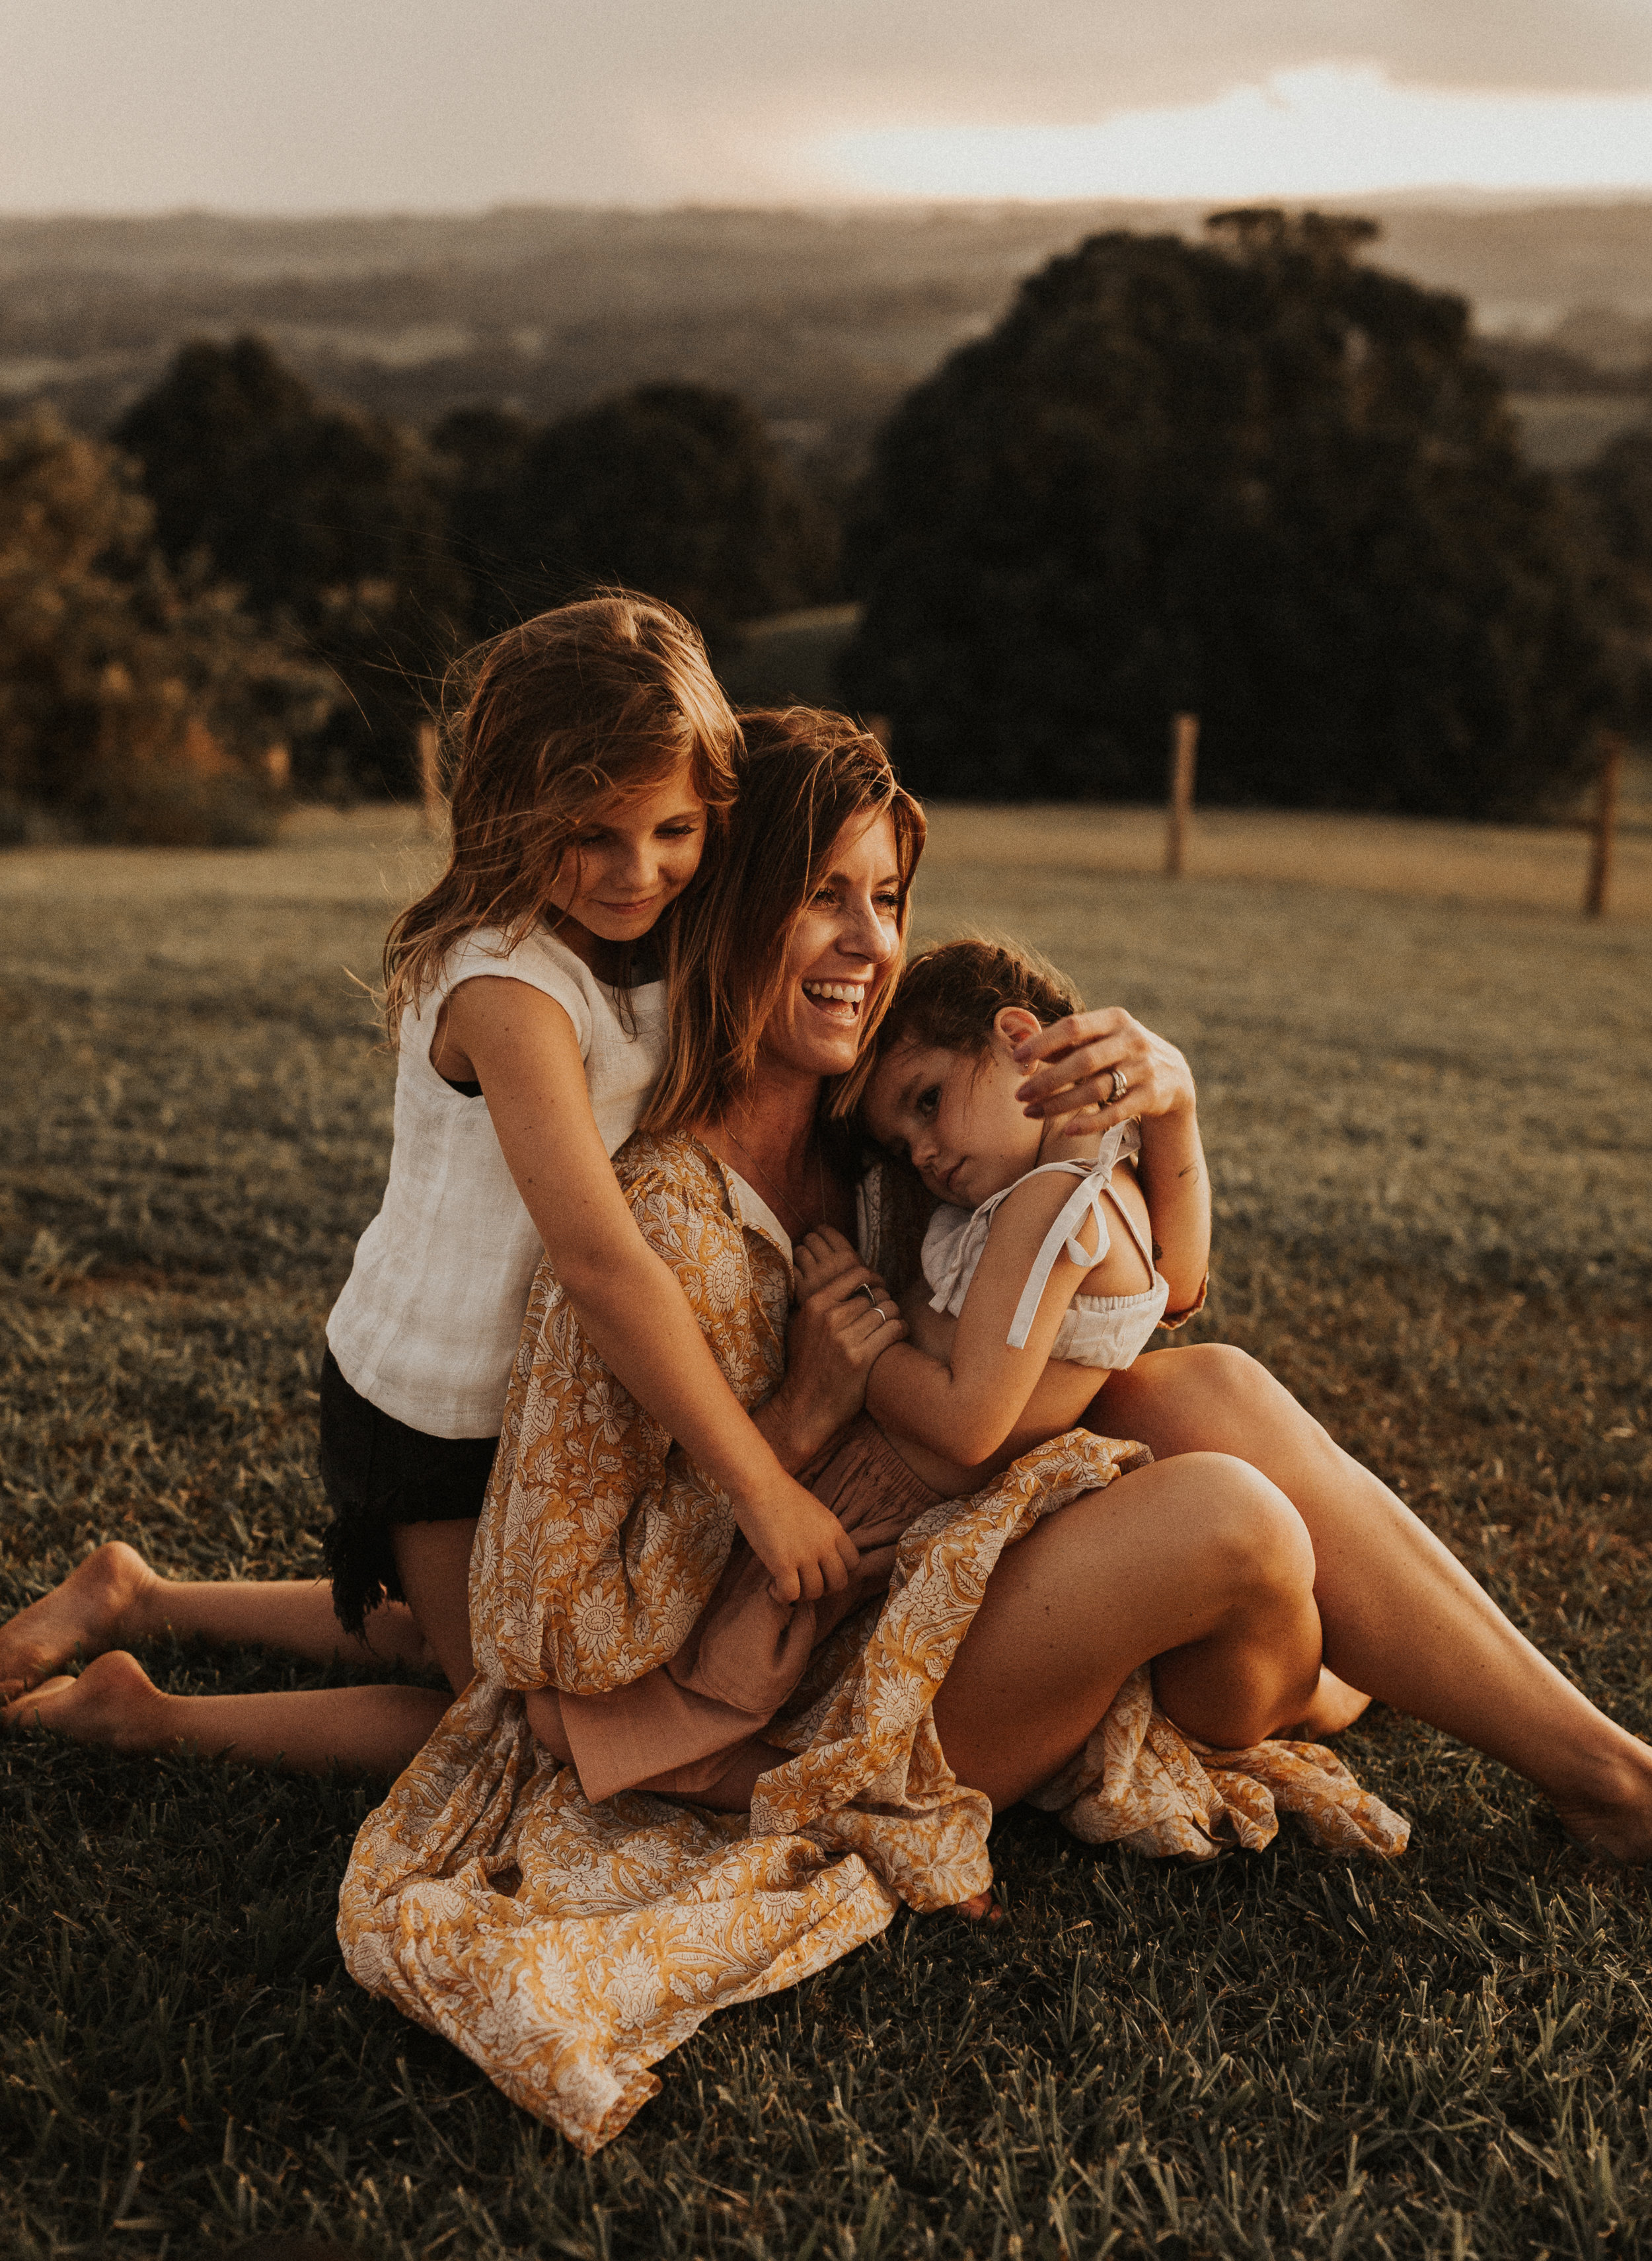 - Family or Couples Session: $700 + gst- 1 hour family or couples session, anywhere in the Byron Bay area. I'll help you pick a quiet, beautiful location and assist with ideas for what to wear.-This session is designed for families or couples only and will be held at an outdoor location at sunrise or sunset.-I tend to book weekdays only as the beaches are quieter, however if this is not possible please let me know.-You will receive 150+ edited hi res photos from your session. These will be delivered via a downloadable web gallery with full printing rights within 3 weeks of your session date